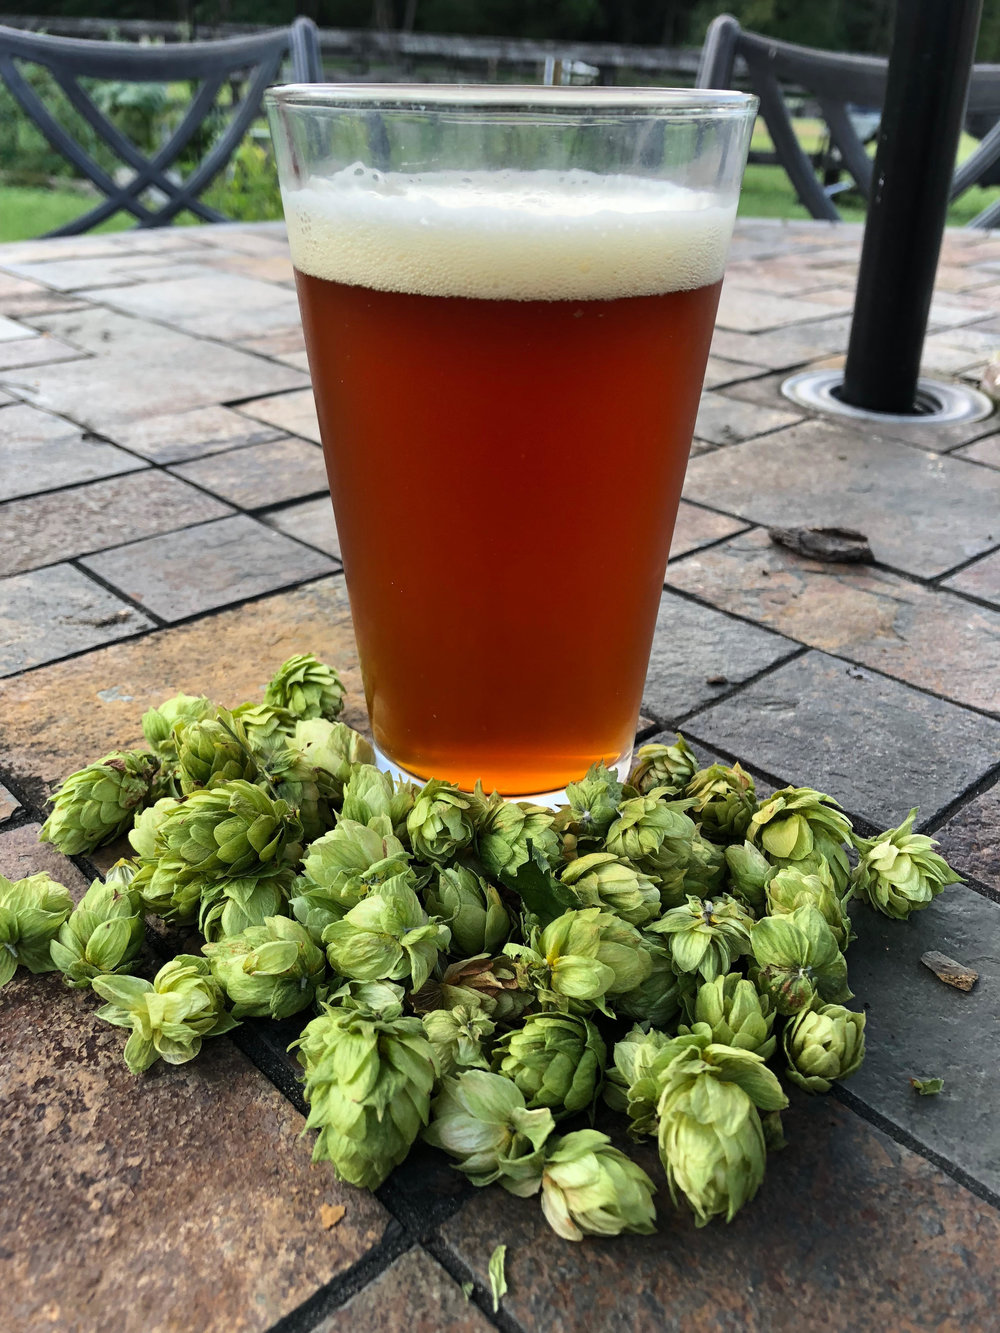 Blue Force Tracker IPA - This IPA celebrates a symphony of hops. Maltiness fades to the background as aromas of citrus, floral, pine, tropical fruits and stone fruit are intertwined throughout every sip. The mouthfeel is medium and finish is clean, leaving only the lingering scent of the hops in your mind.8.3%ABV